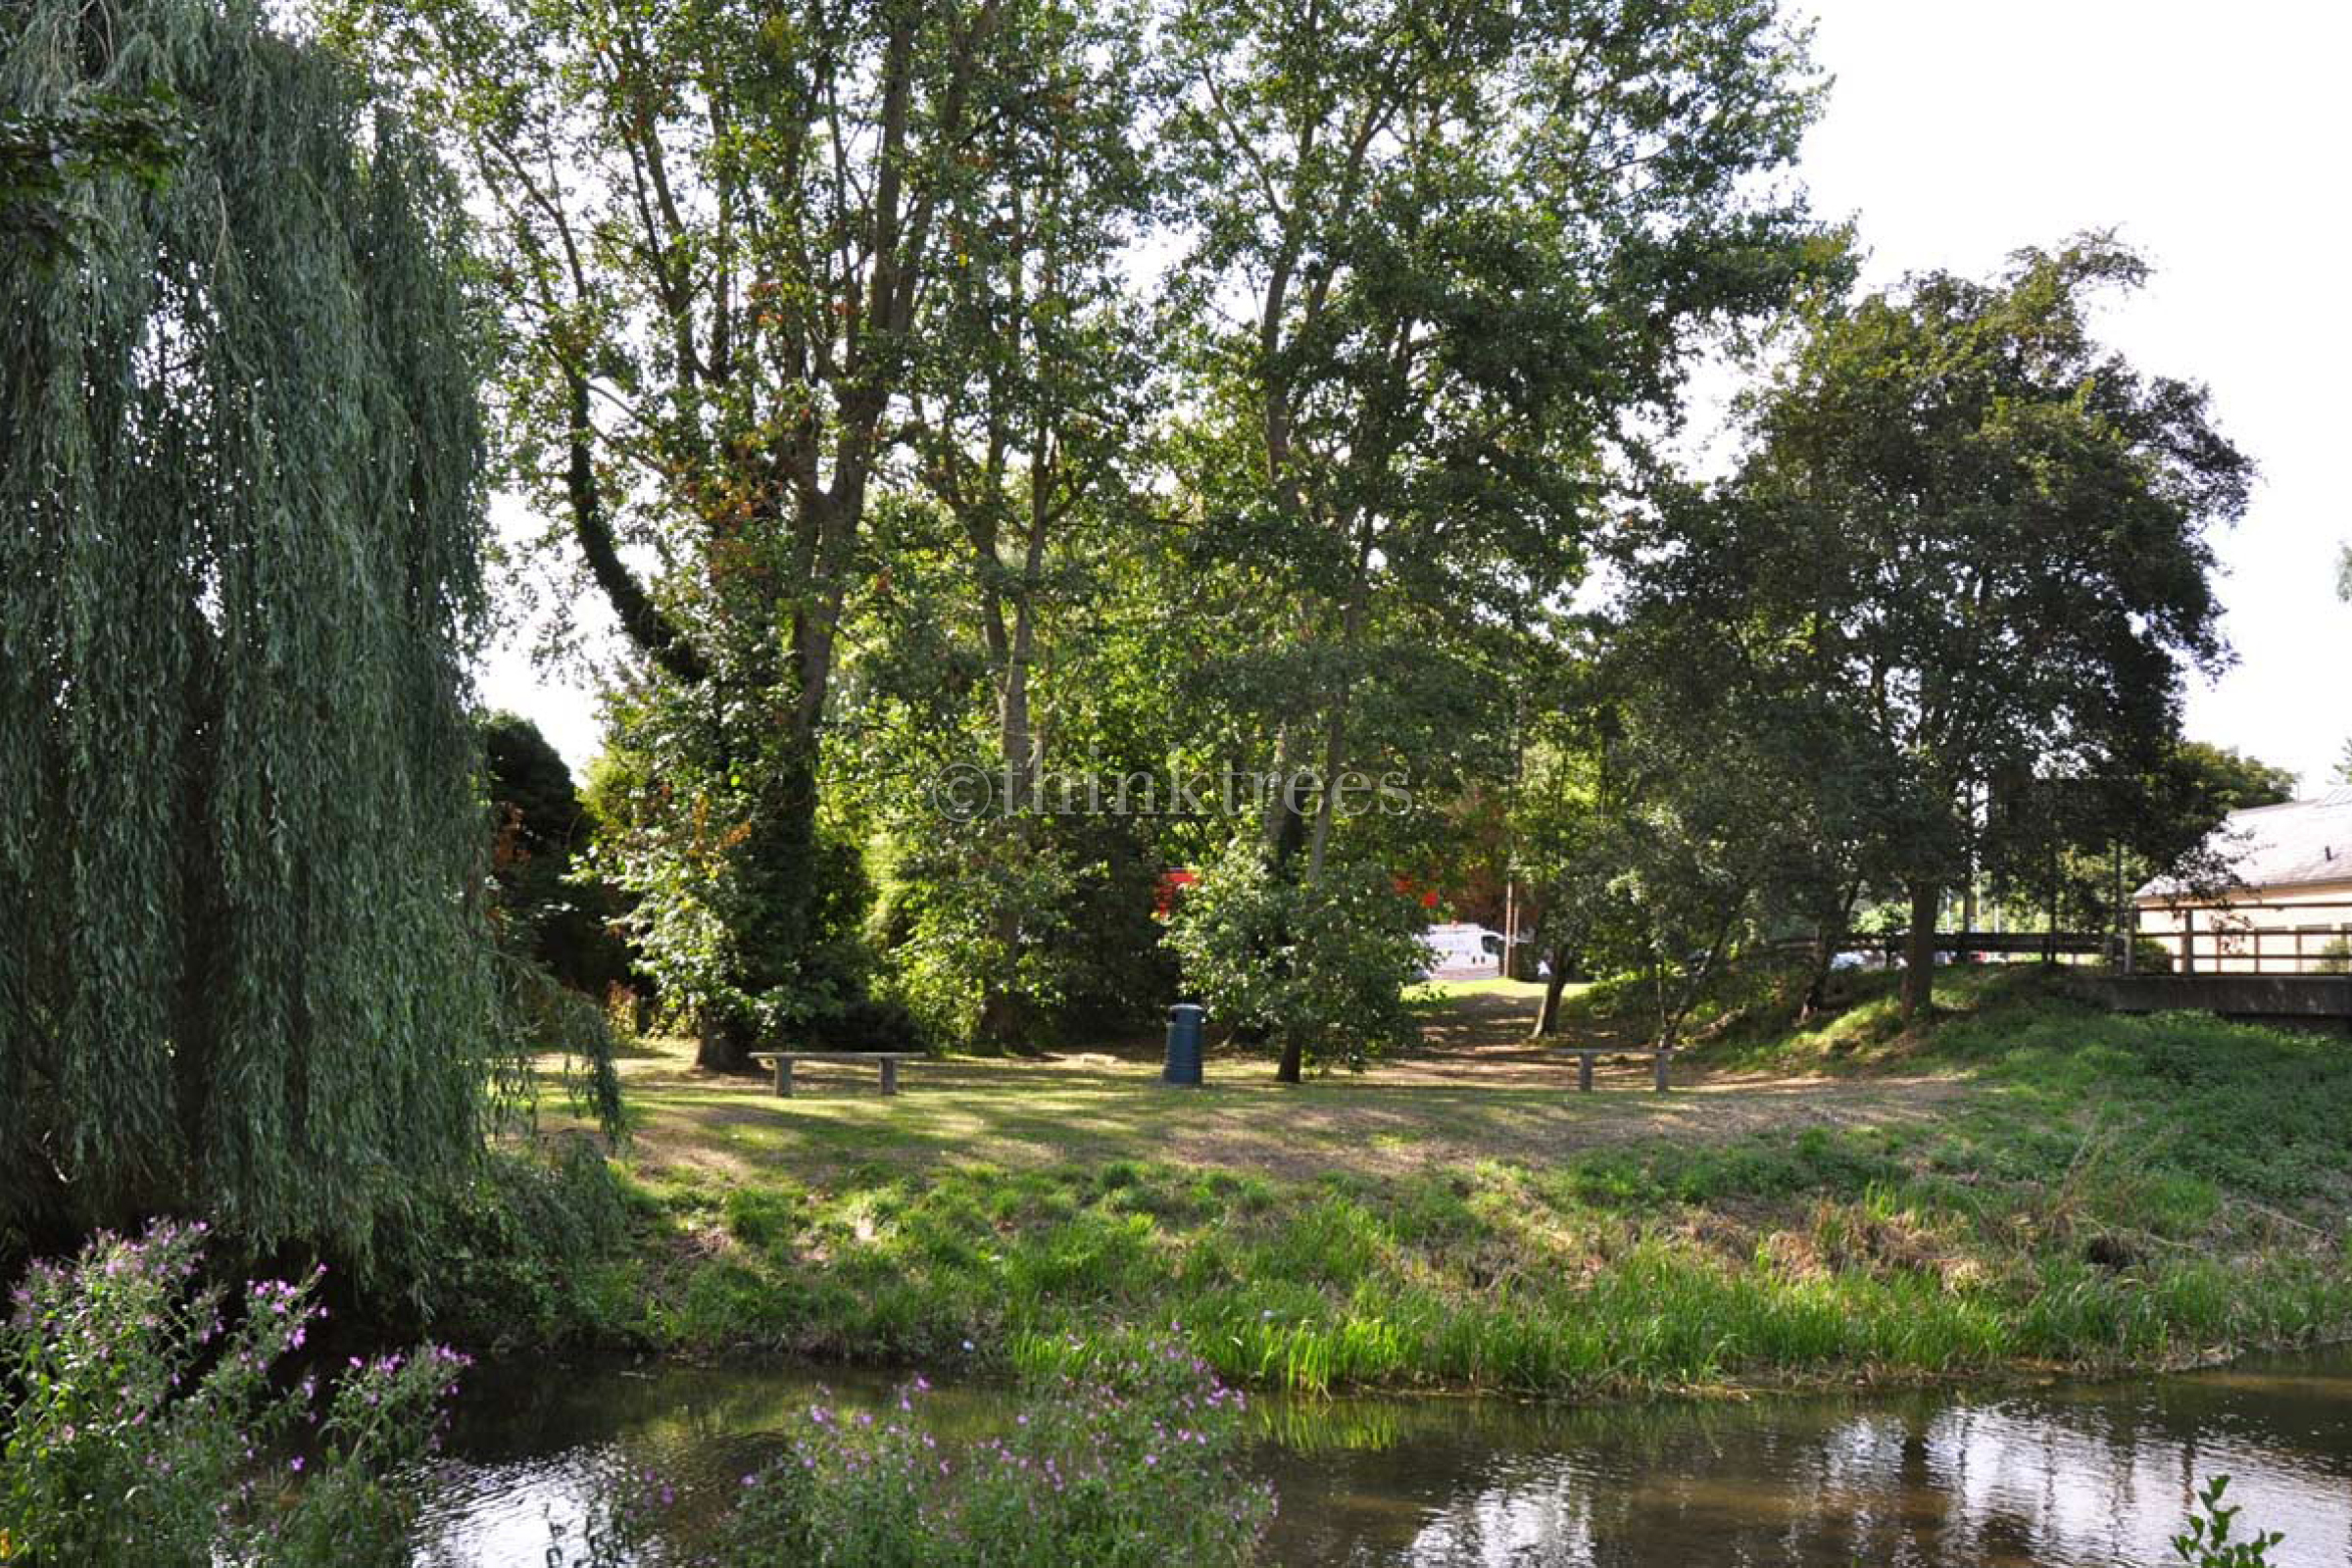 Public open space next to the river Rib in Standon, Herts